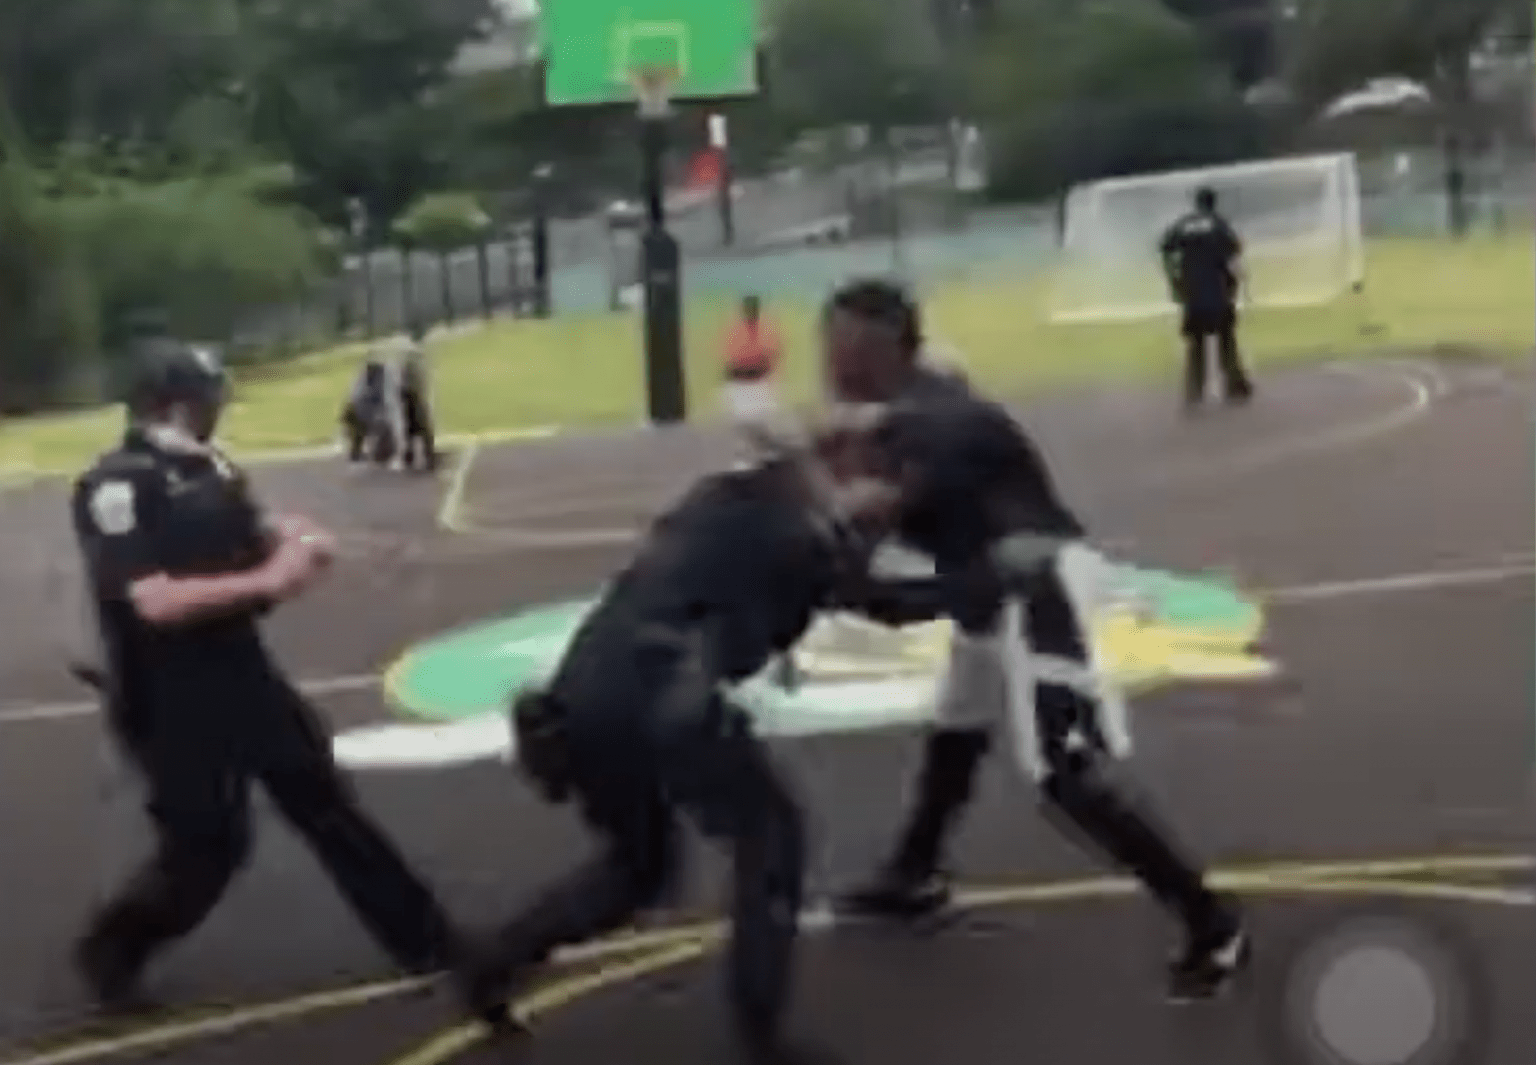 Watch: Two police officers violently assaulted after asking large group in Washington D.C. to disperse